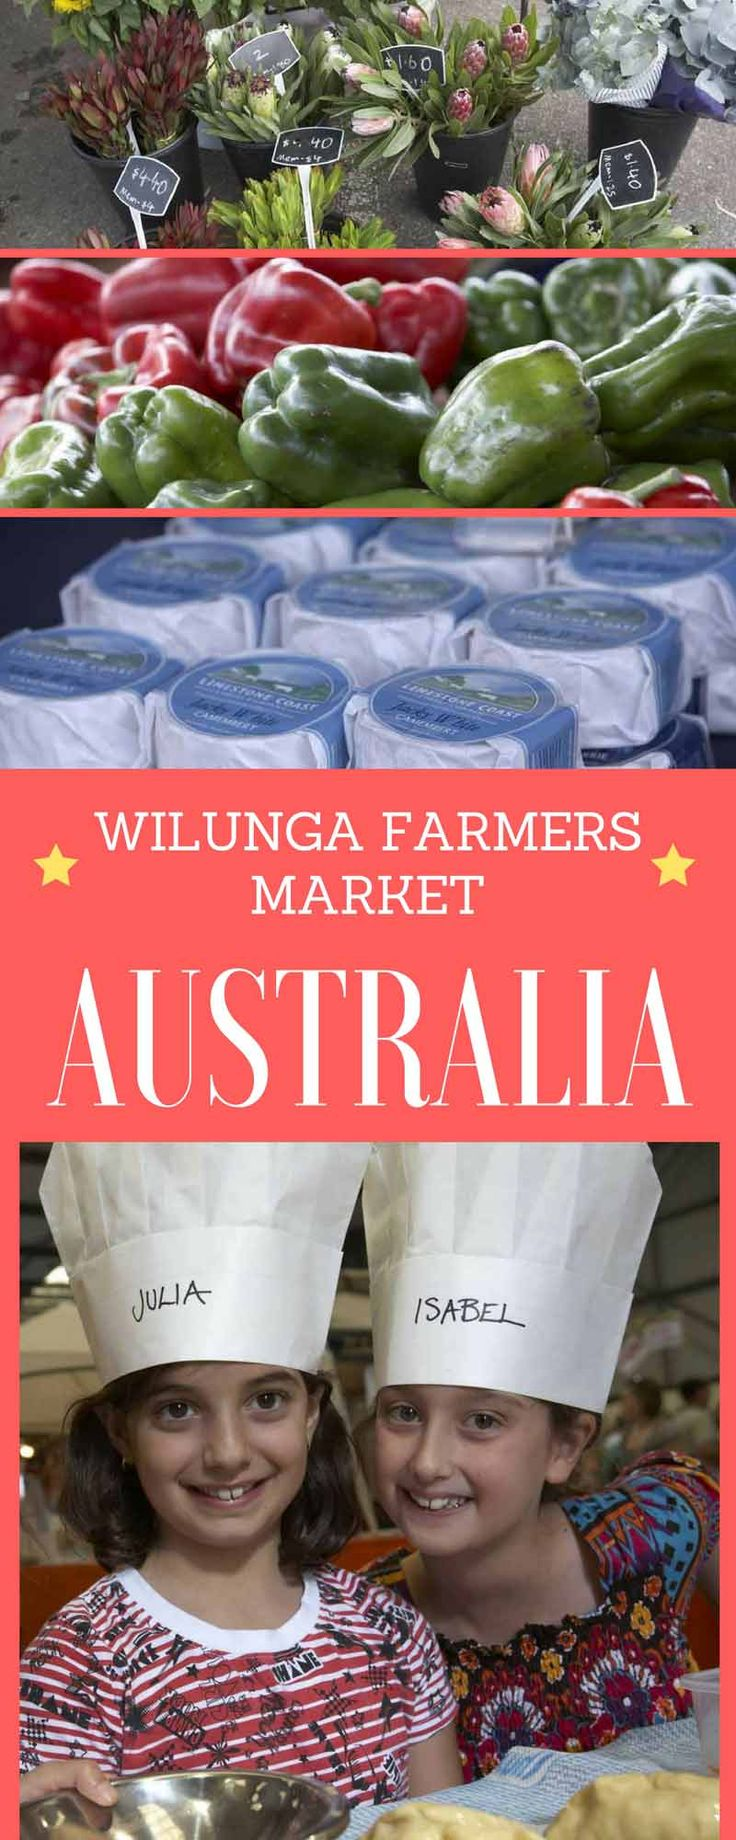 Wilunga Farmers Market in South Australia. Anyone who lives in South Australia will tell you that one of the best farmer's markets is located in the historic town of Willunga, 47 kilometres south of Adelaide in the Fleurieu Peninsula's McLaren Vale wine region.